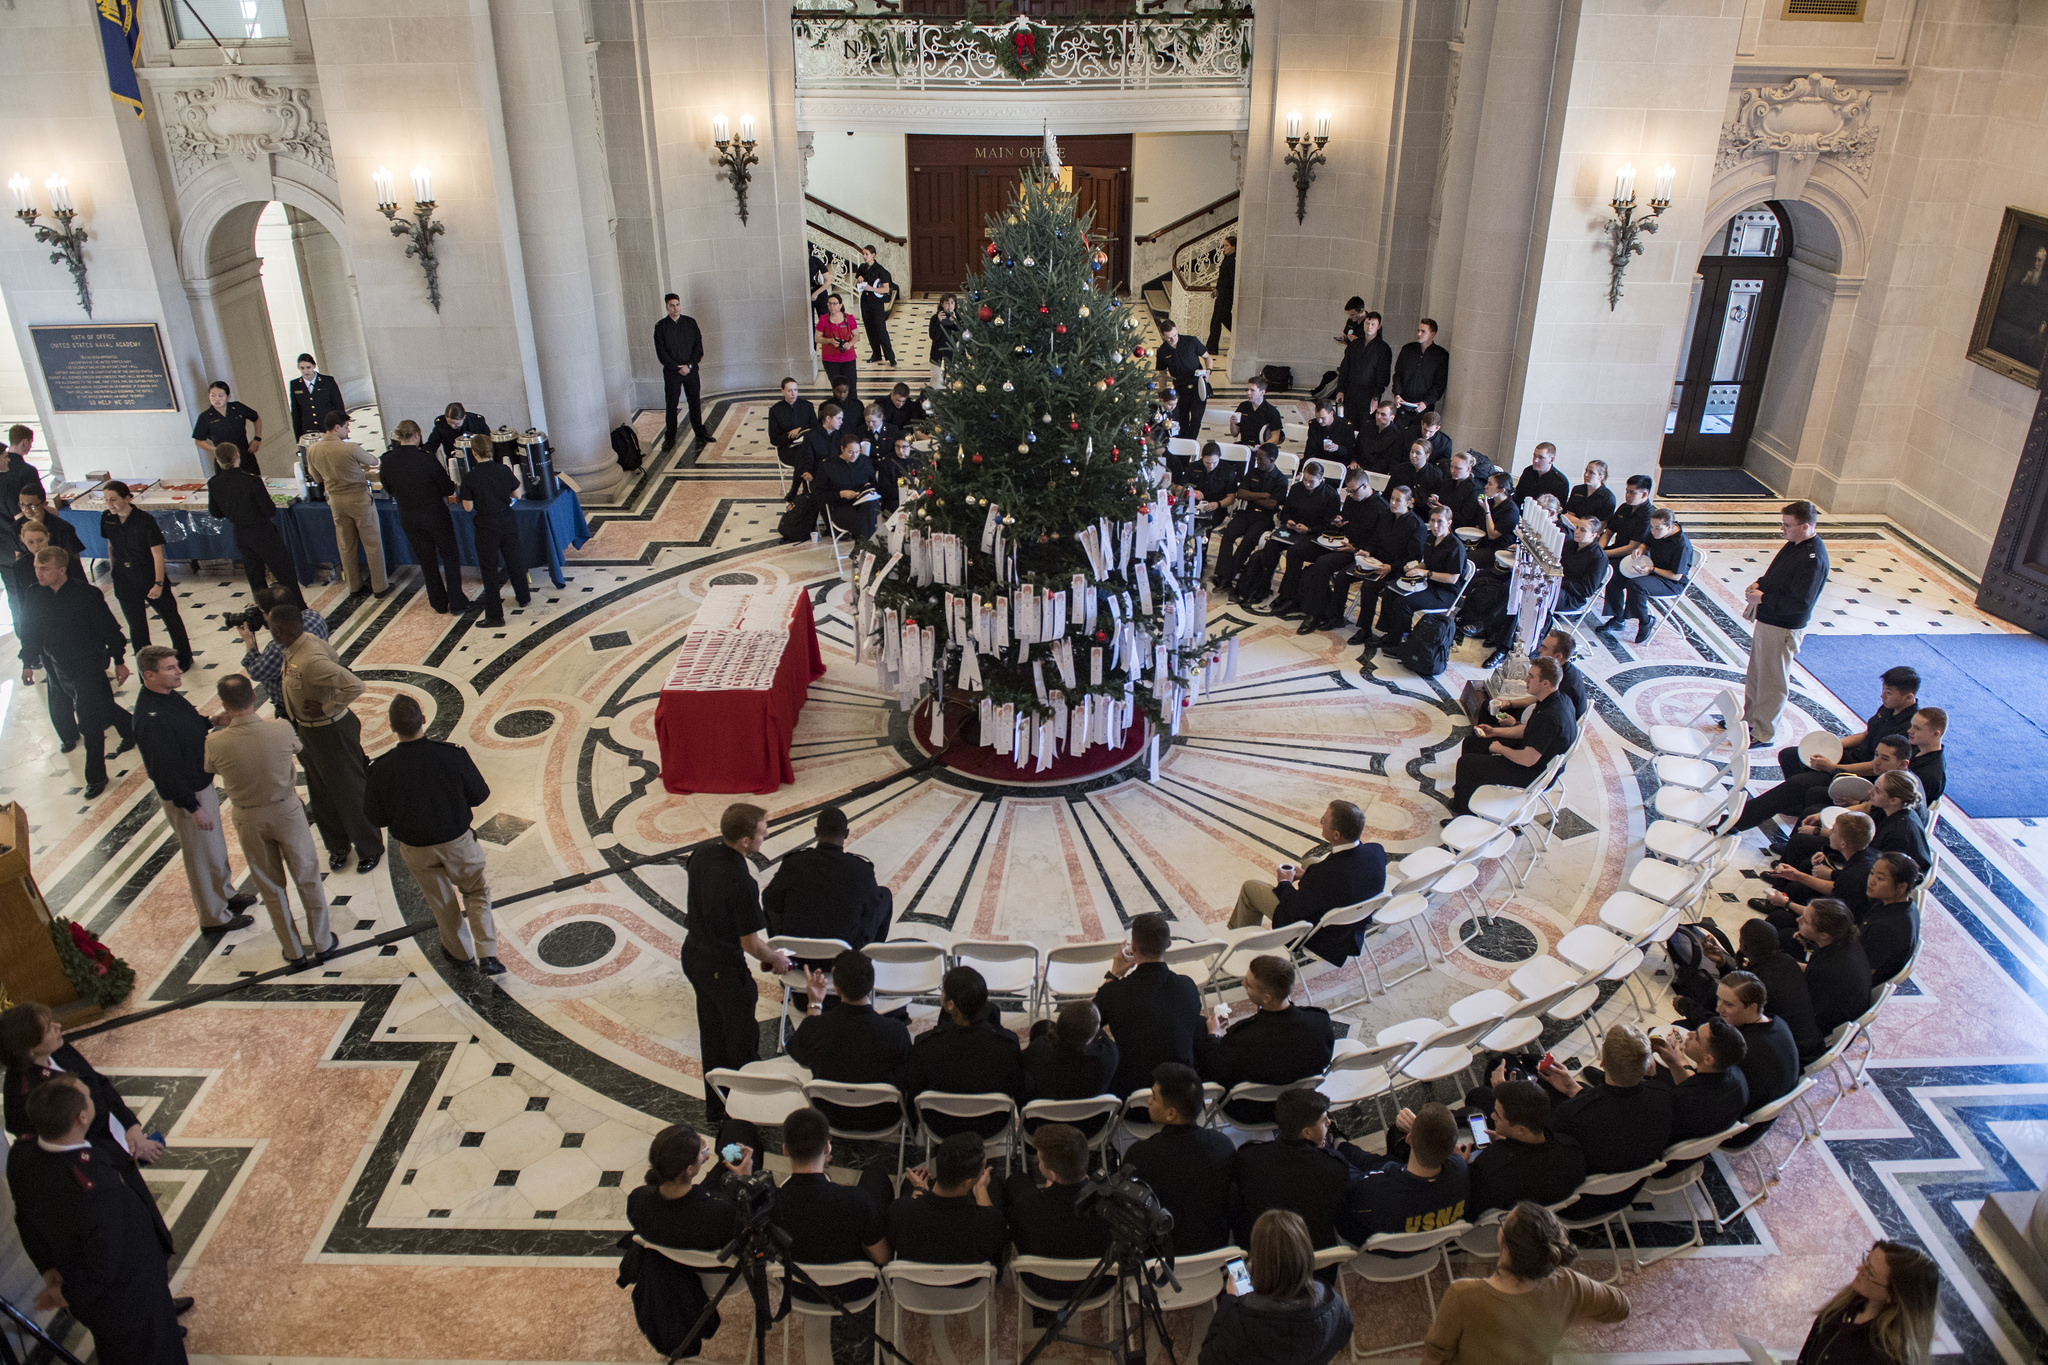 The U.S. Naval Academy holds the 27th annual Giving Tree ceremony Nov. 28, 2017, in Bancroft Hall at Annapolis, Md. (US Naval Academy)